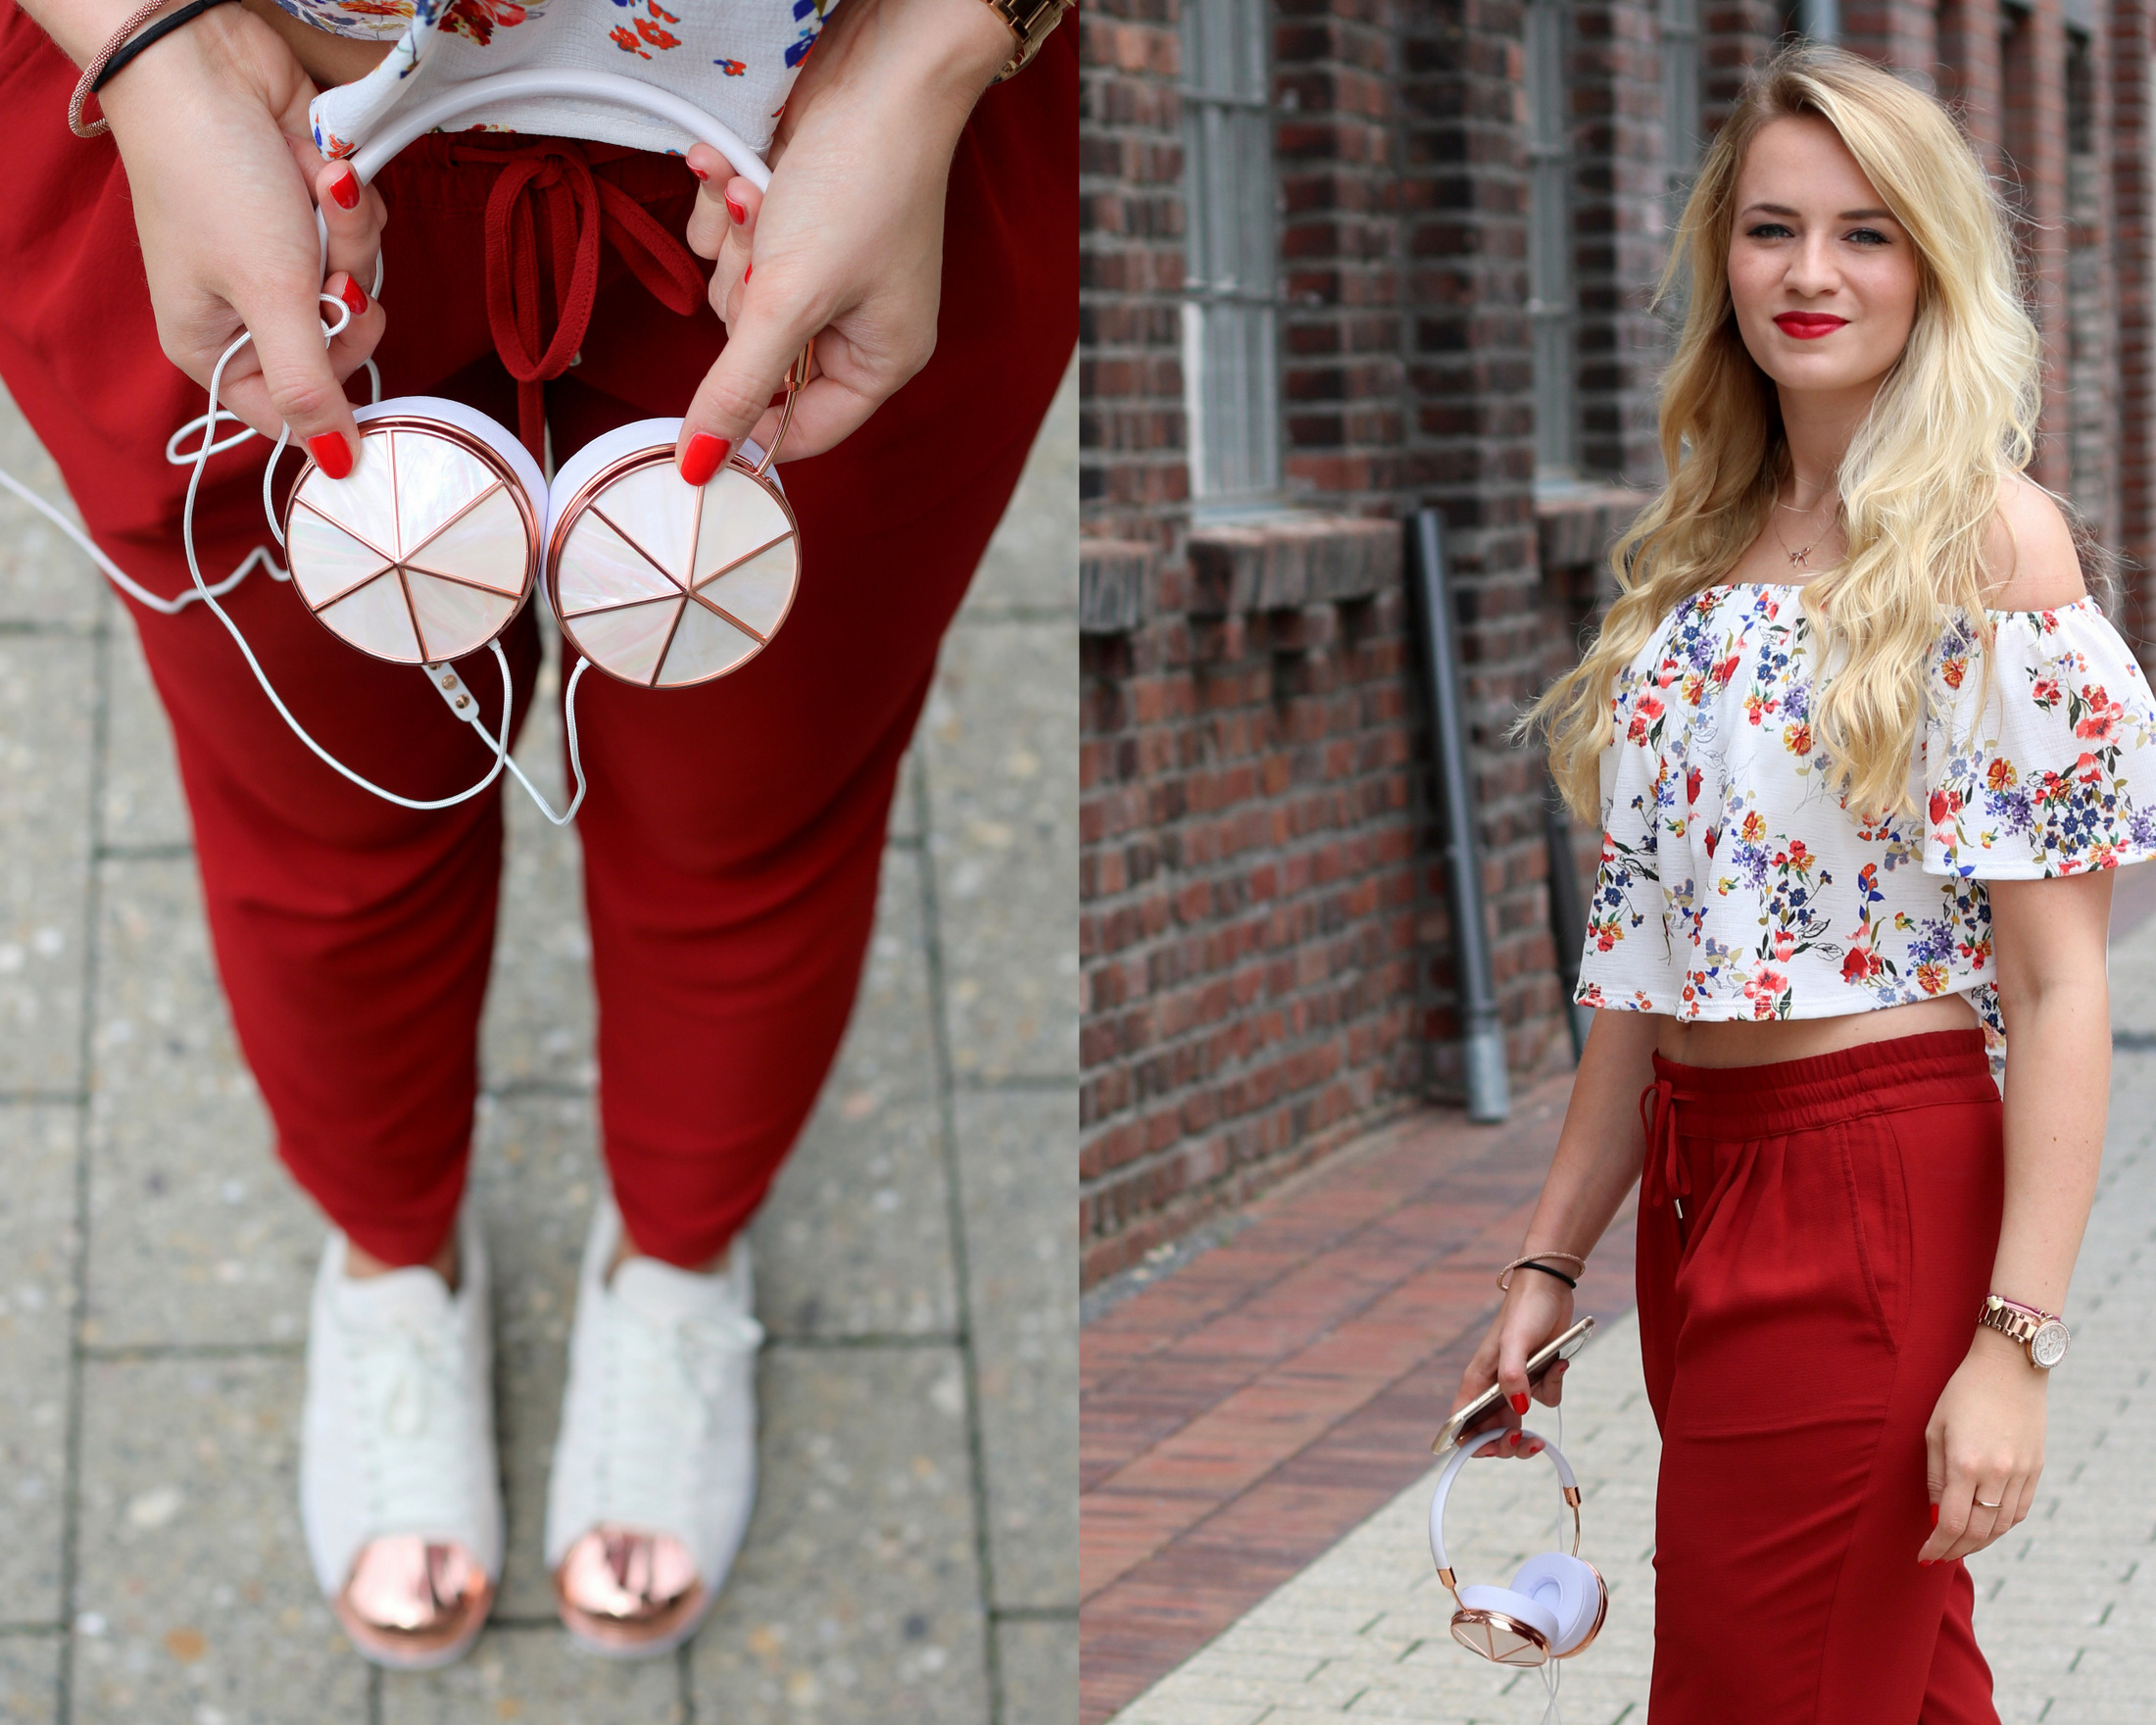 frends-headphones-kopfhörer-audio-musik-music-outfit-summer-early-look-zara-mrsbrightside (12)